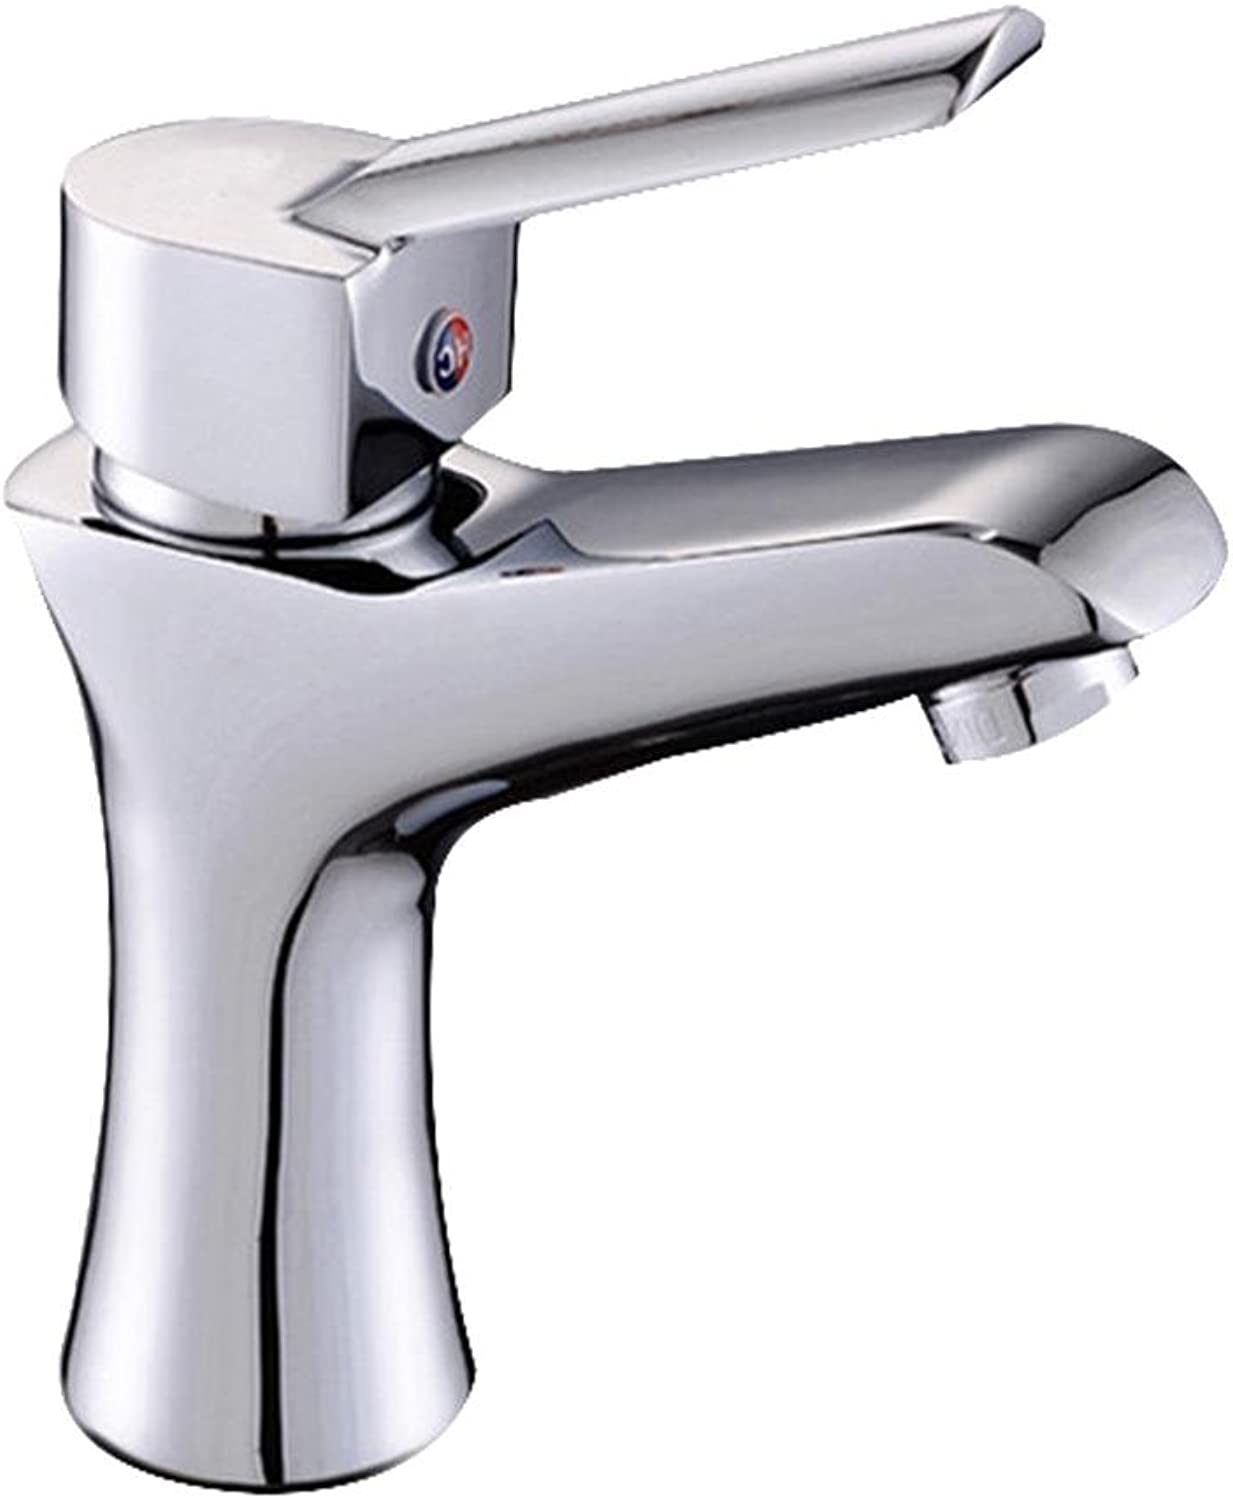 QJIAXING Basin Faucet Hot and Cold Mixed Water Faucet Copper Single Hole Single Handle Ceramic Spool